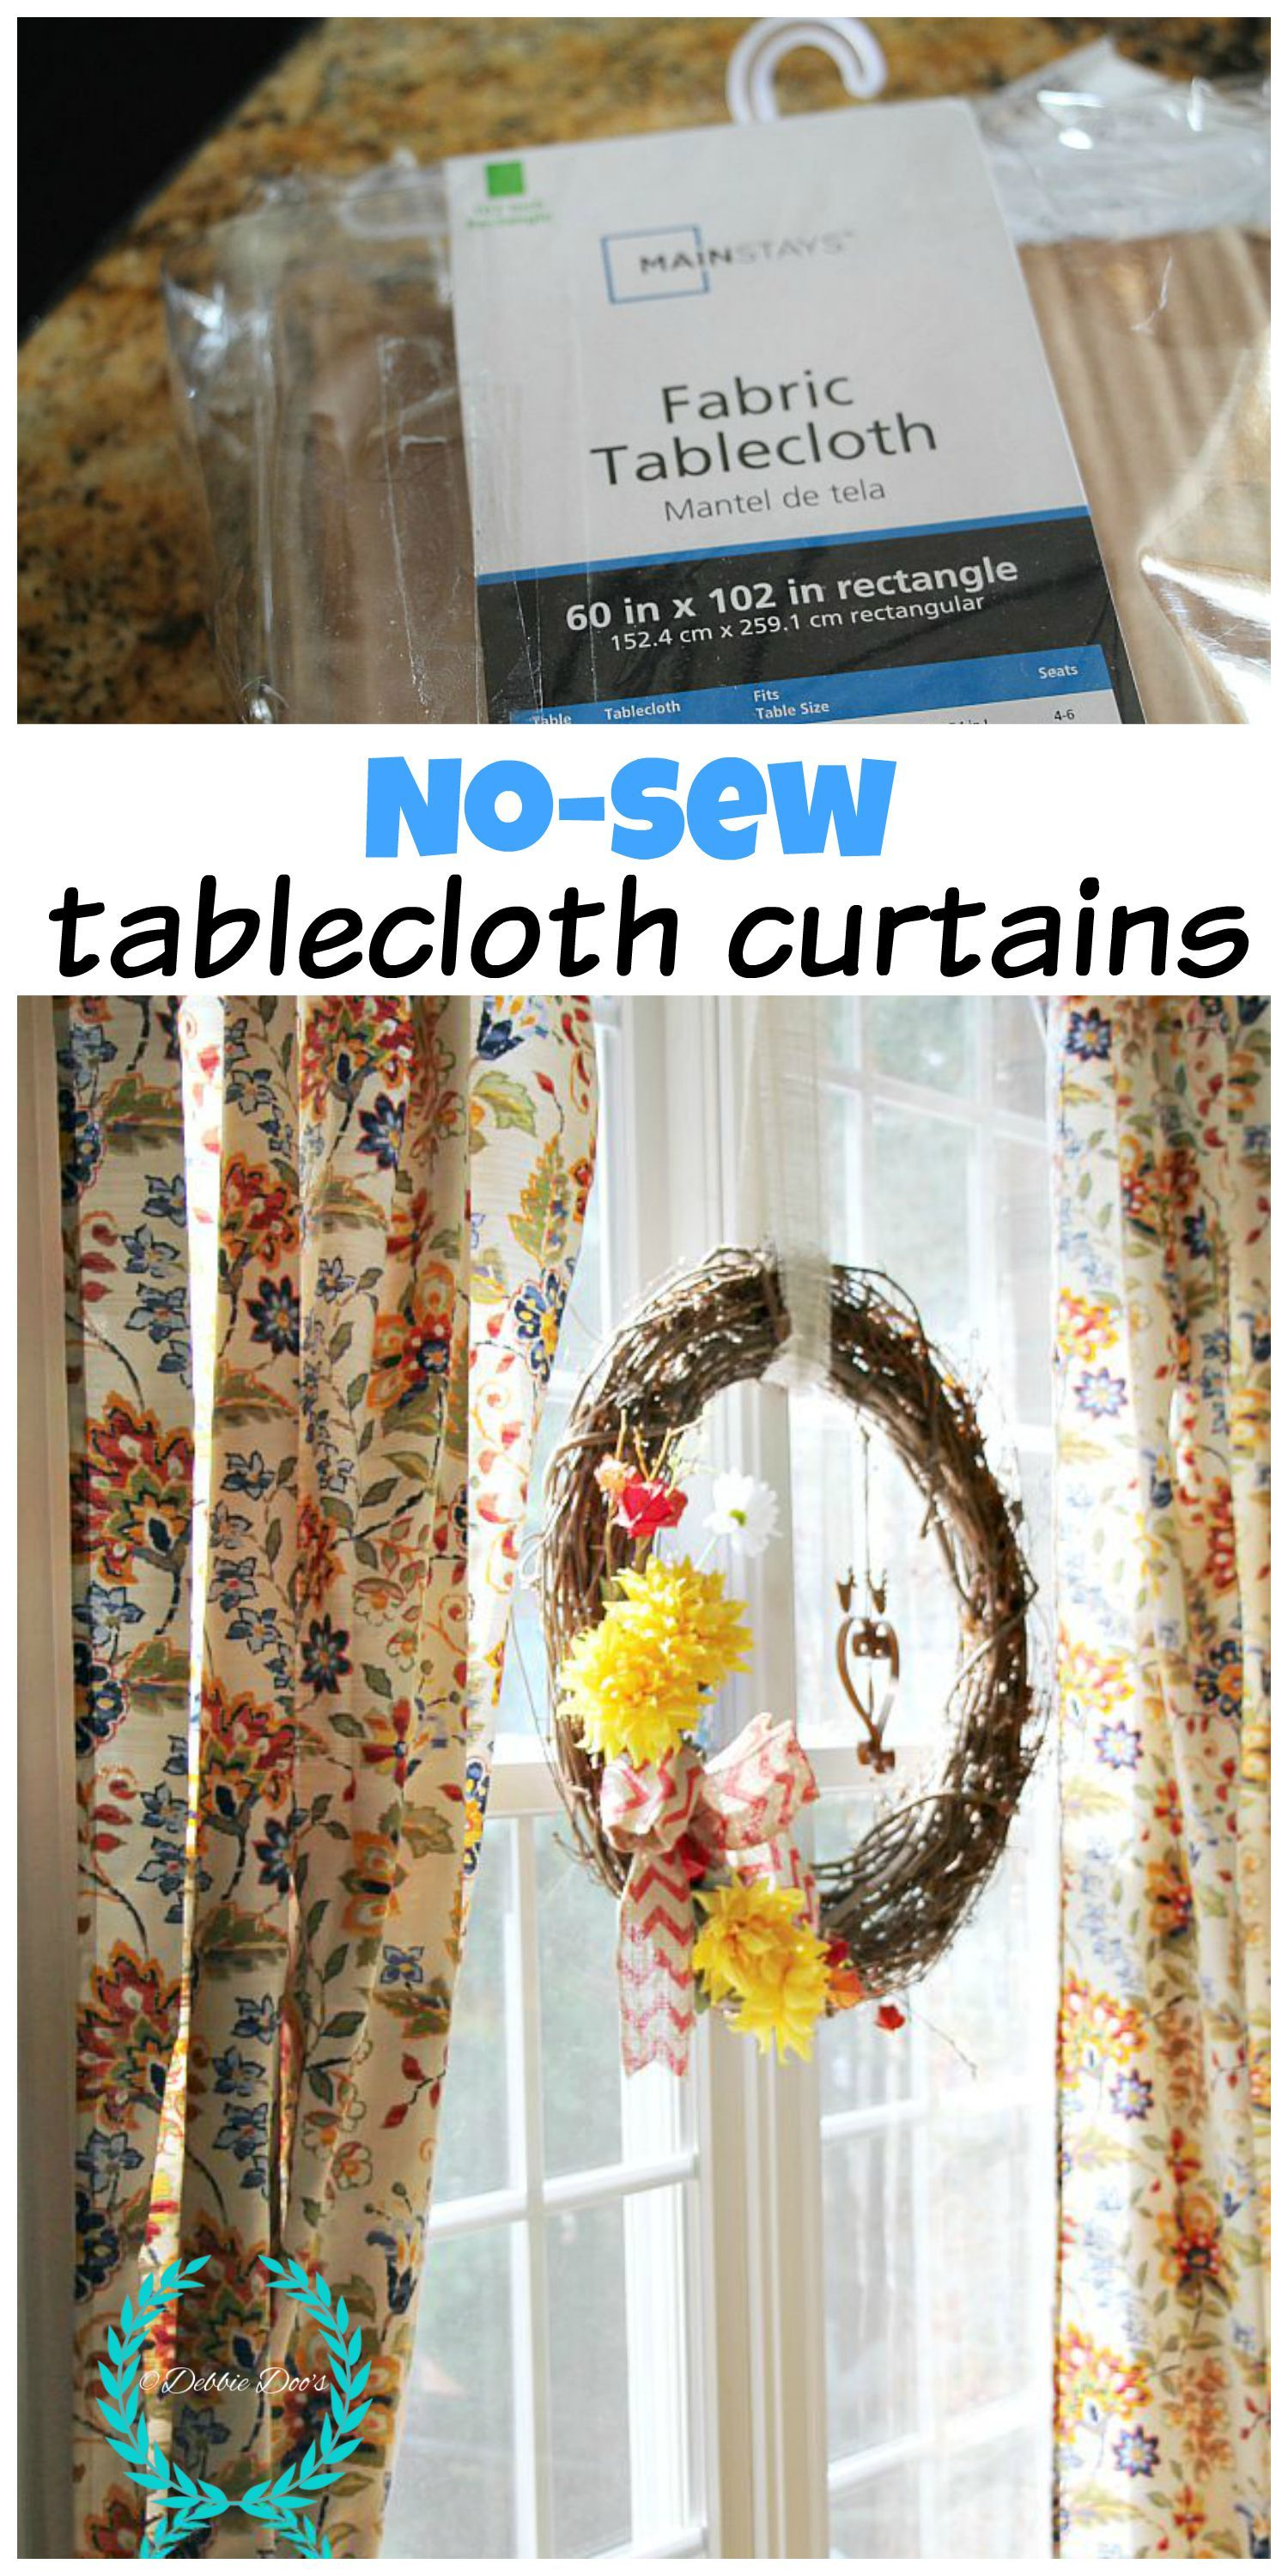 Diy No Sew Curtains No Sew Tablecloth Curtains Tablecloth Curtains Window And Craft